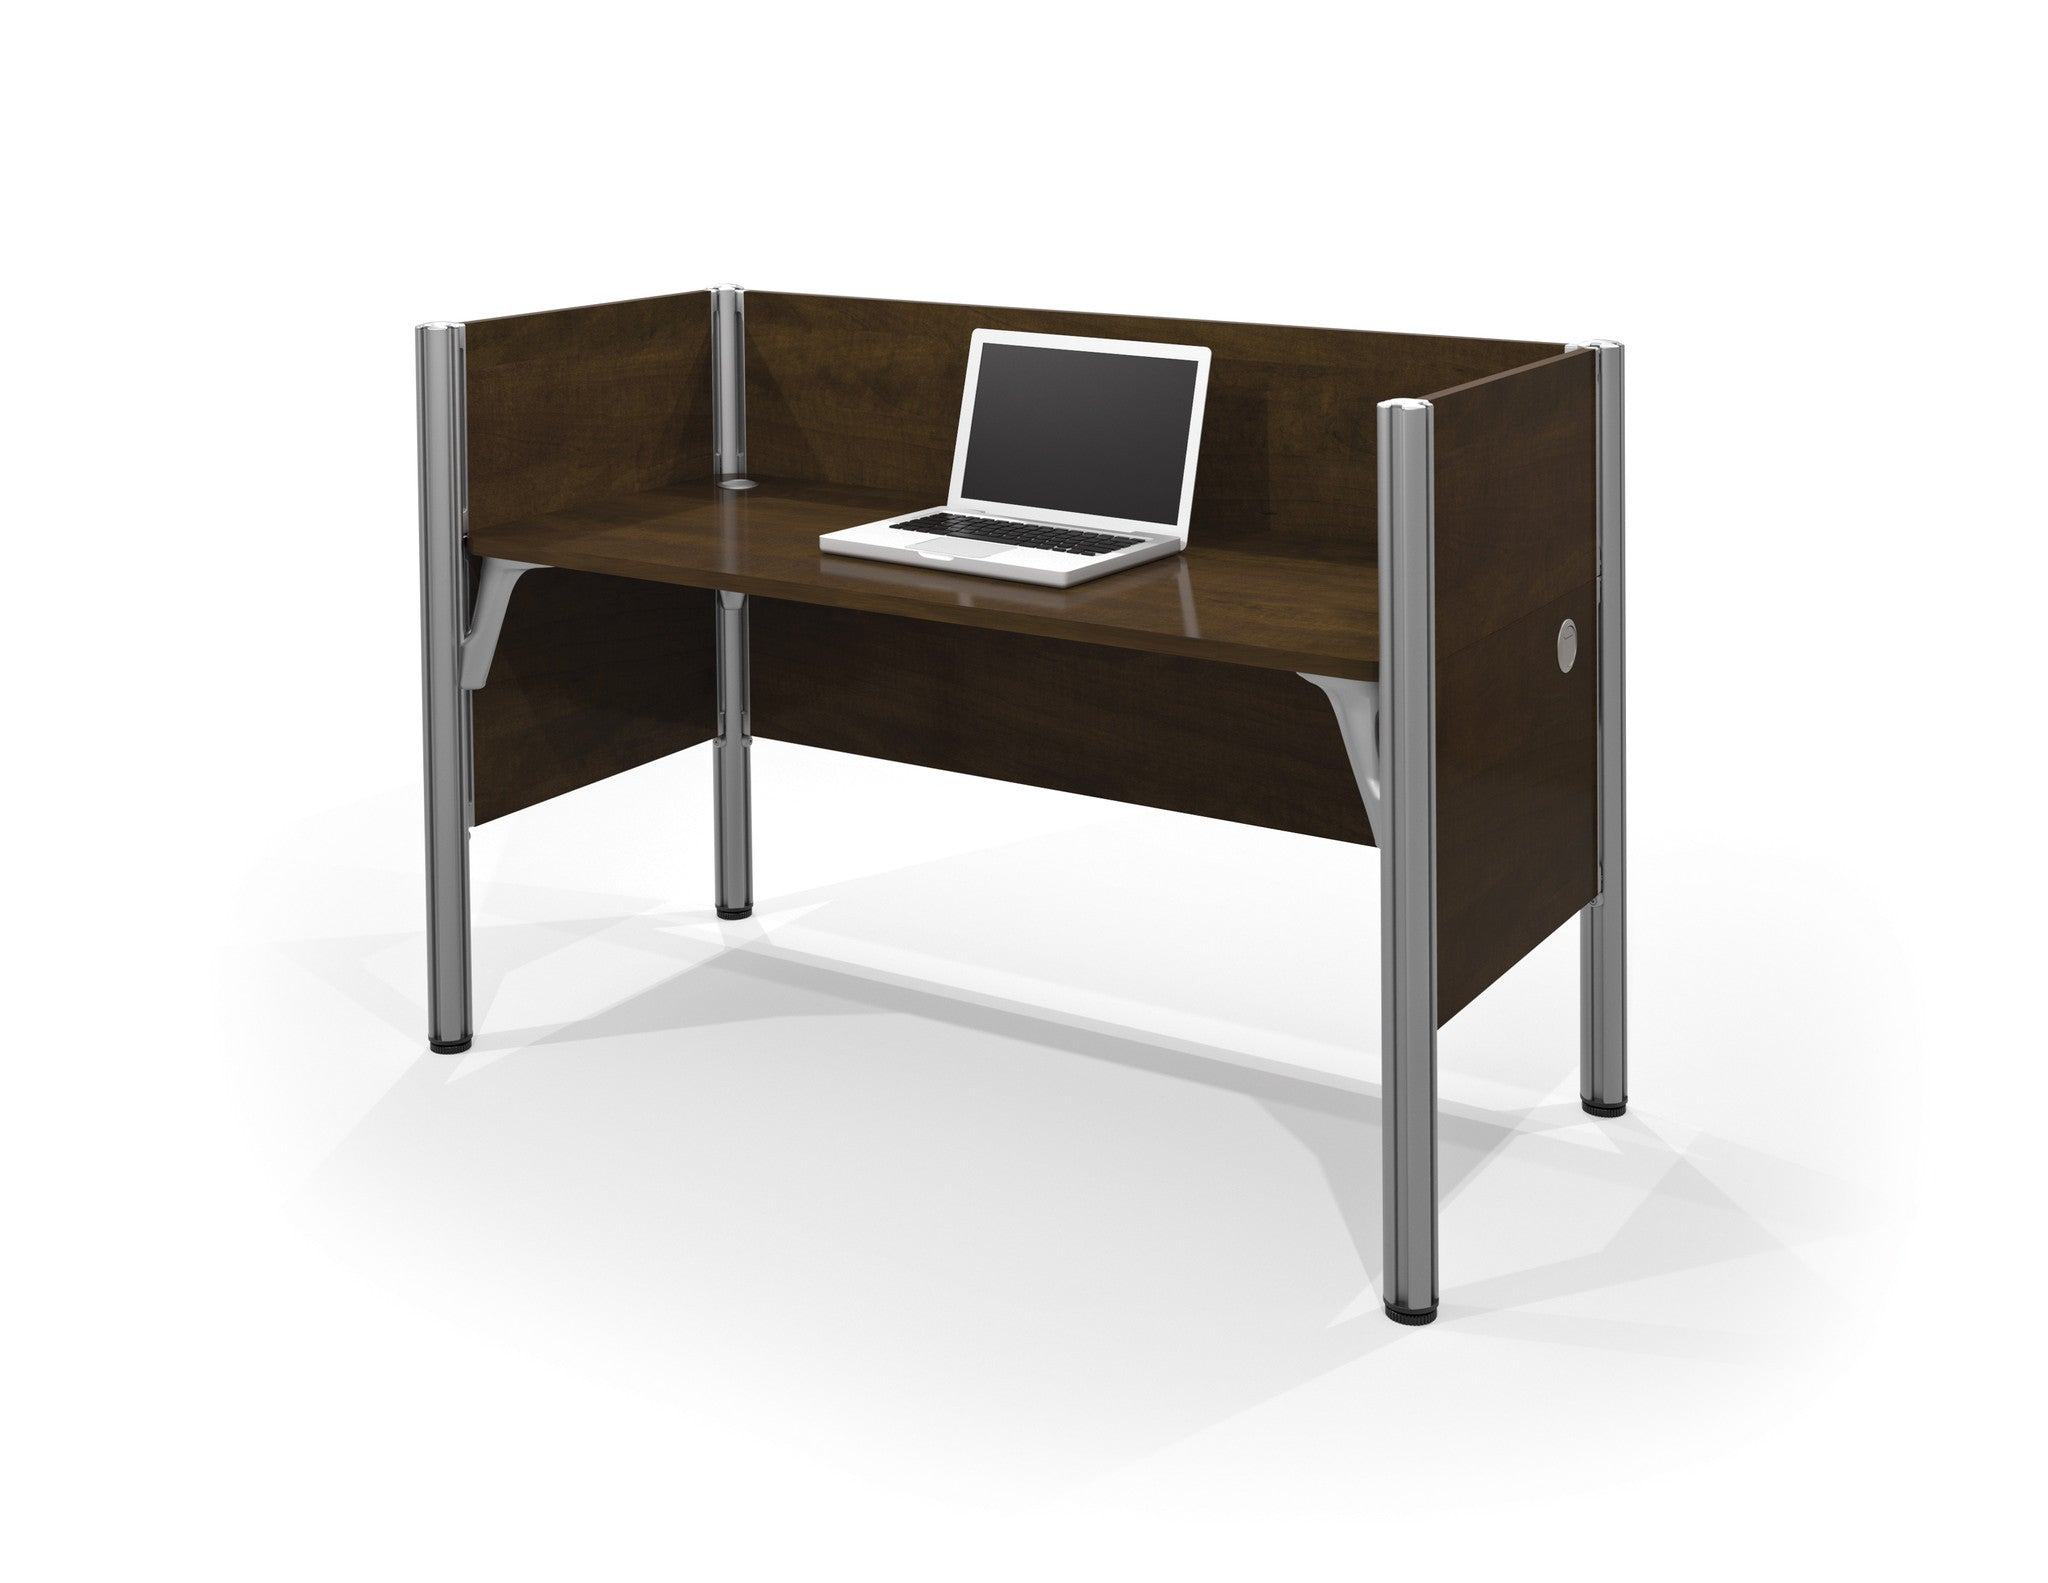 "Pro-Biz Premium 62"" Workstation with Privacy Panel in Chocolate"